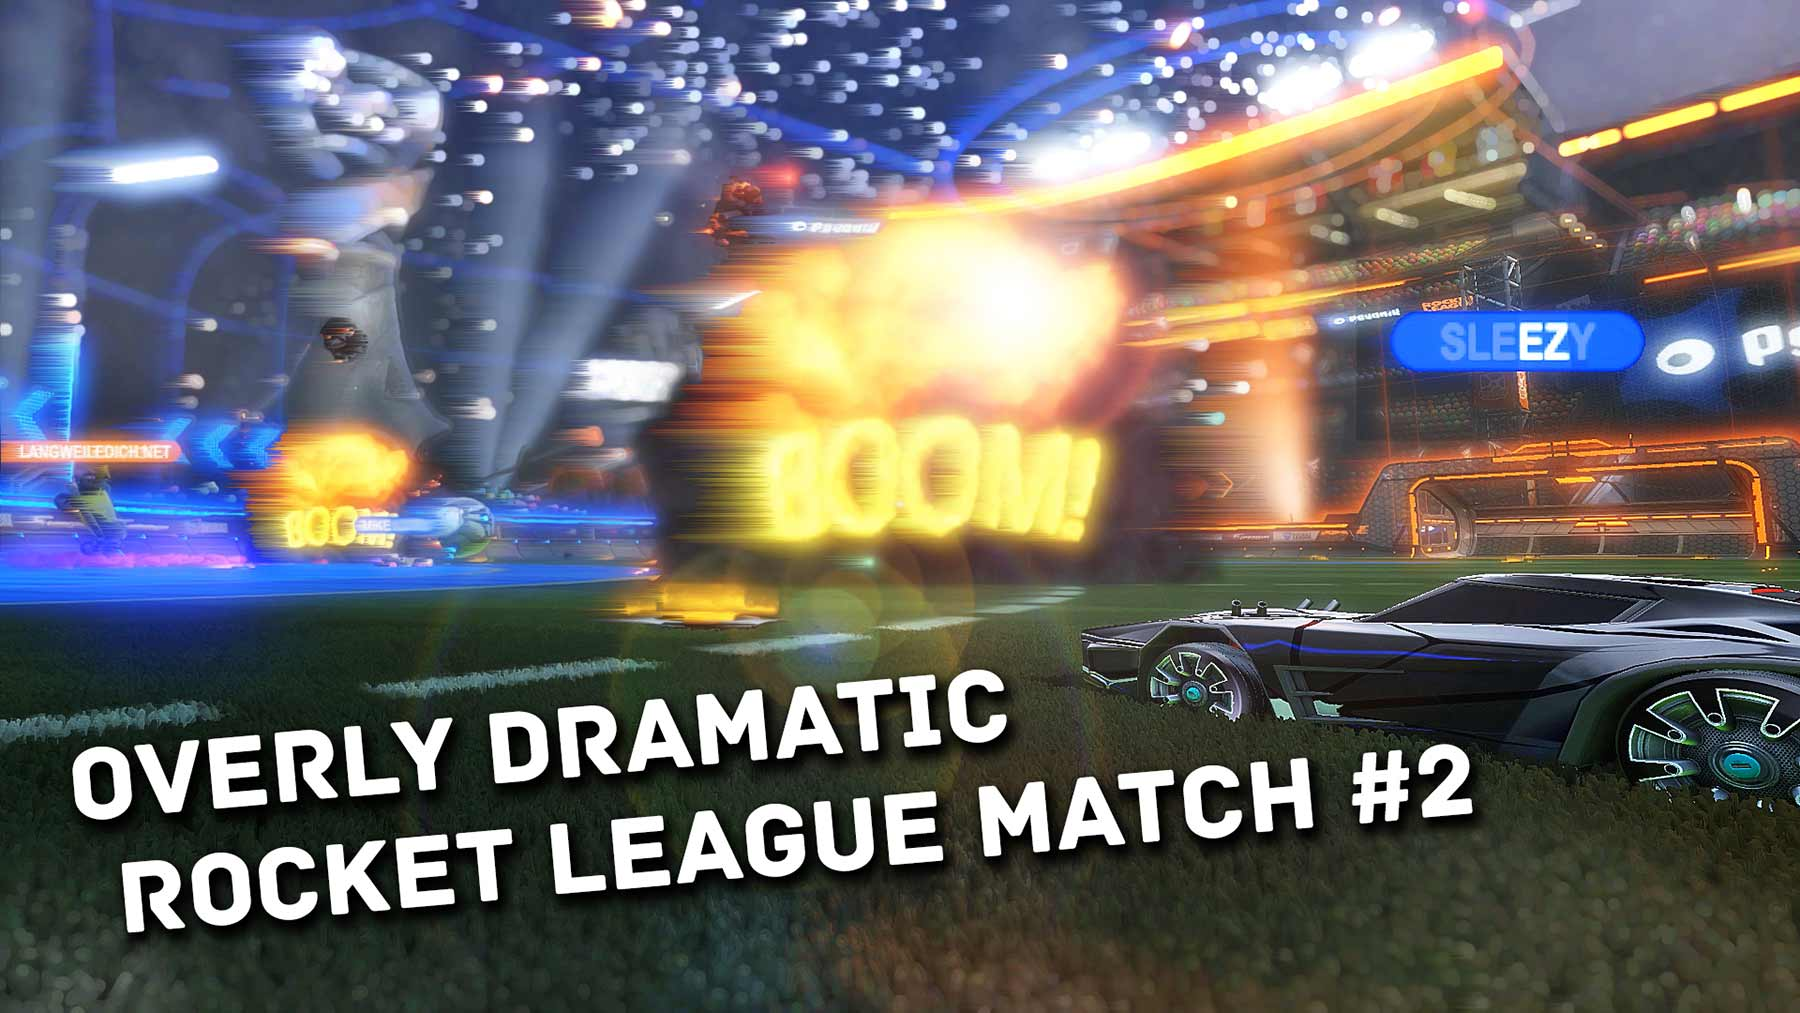 Overly Dramatic Rocket League Match #2